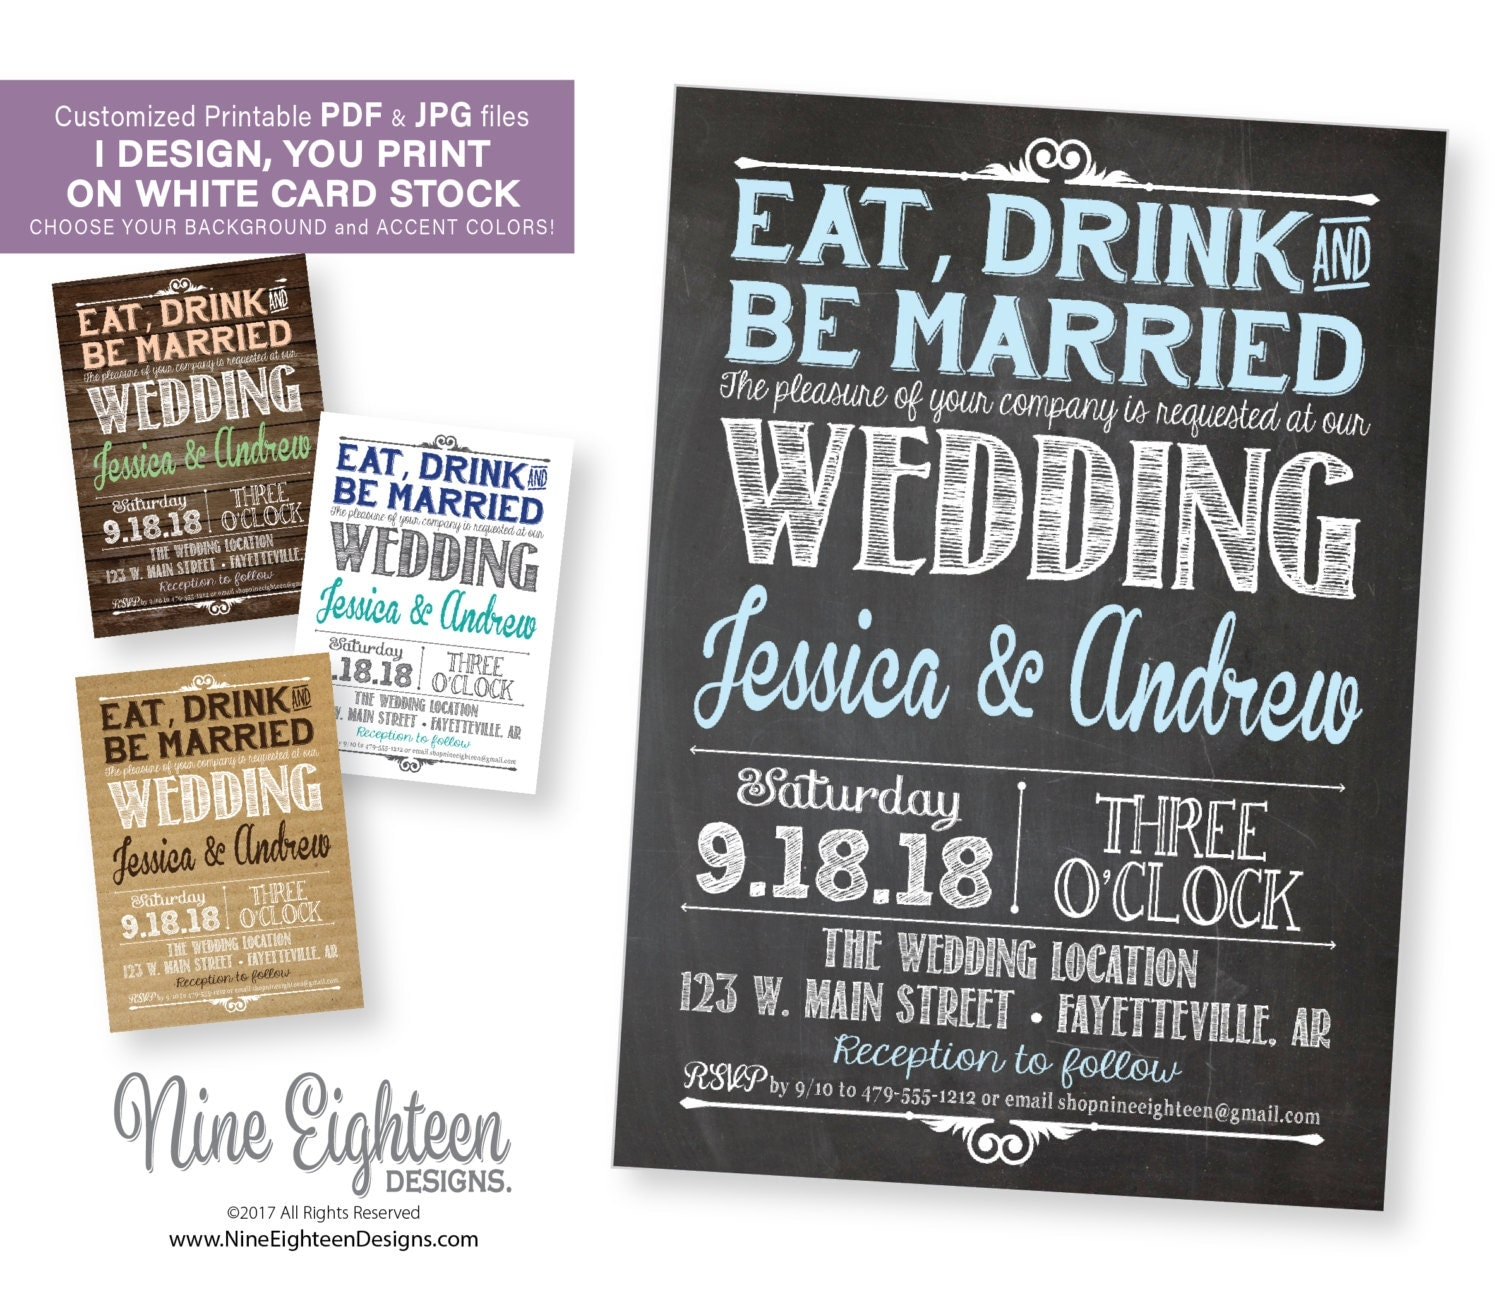 wedding invitation. eat drink and be married. personalized, Wedding invitations